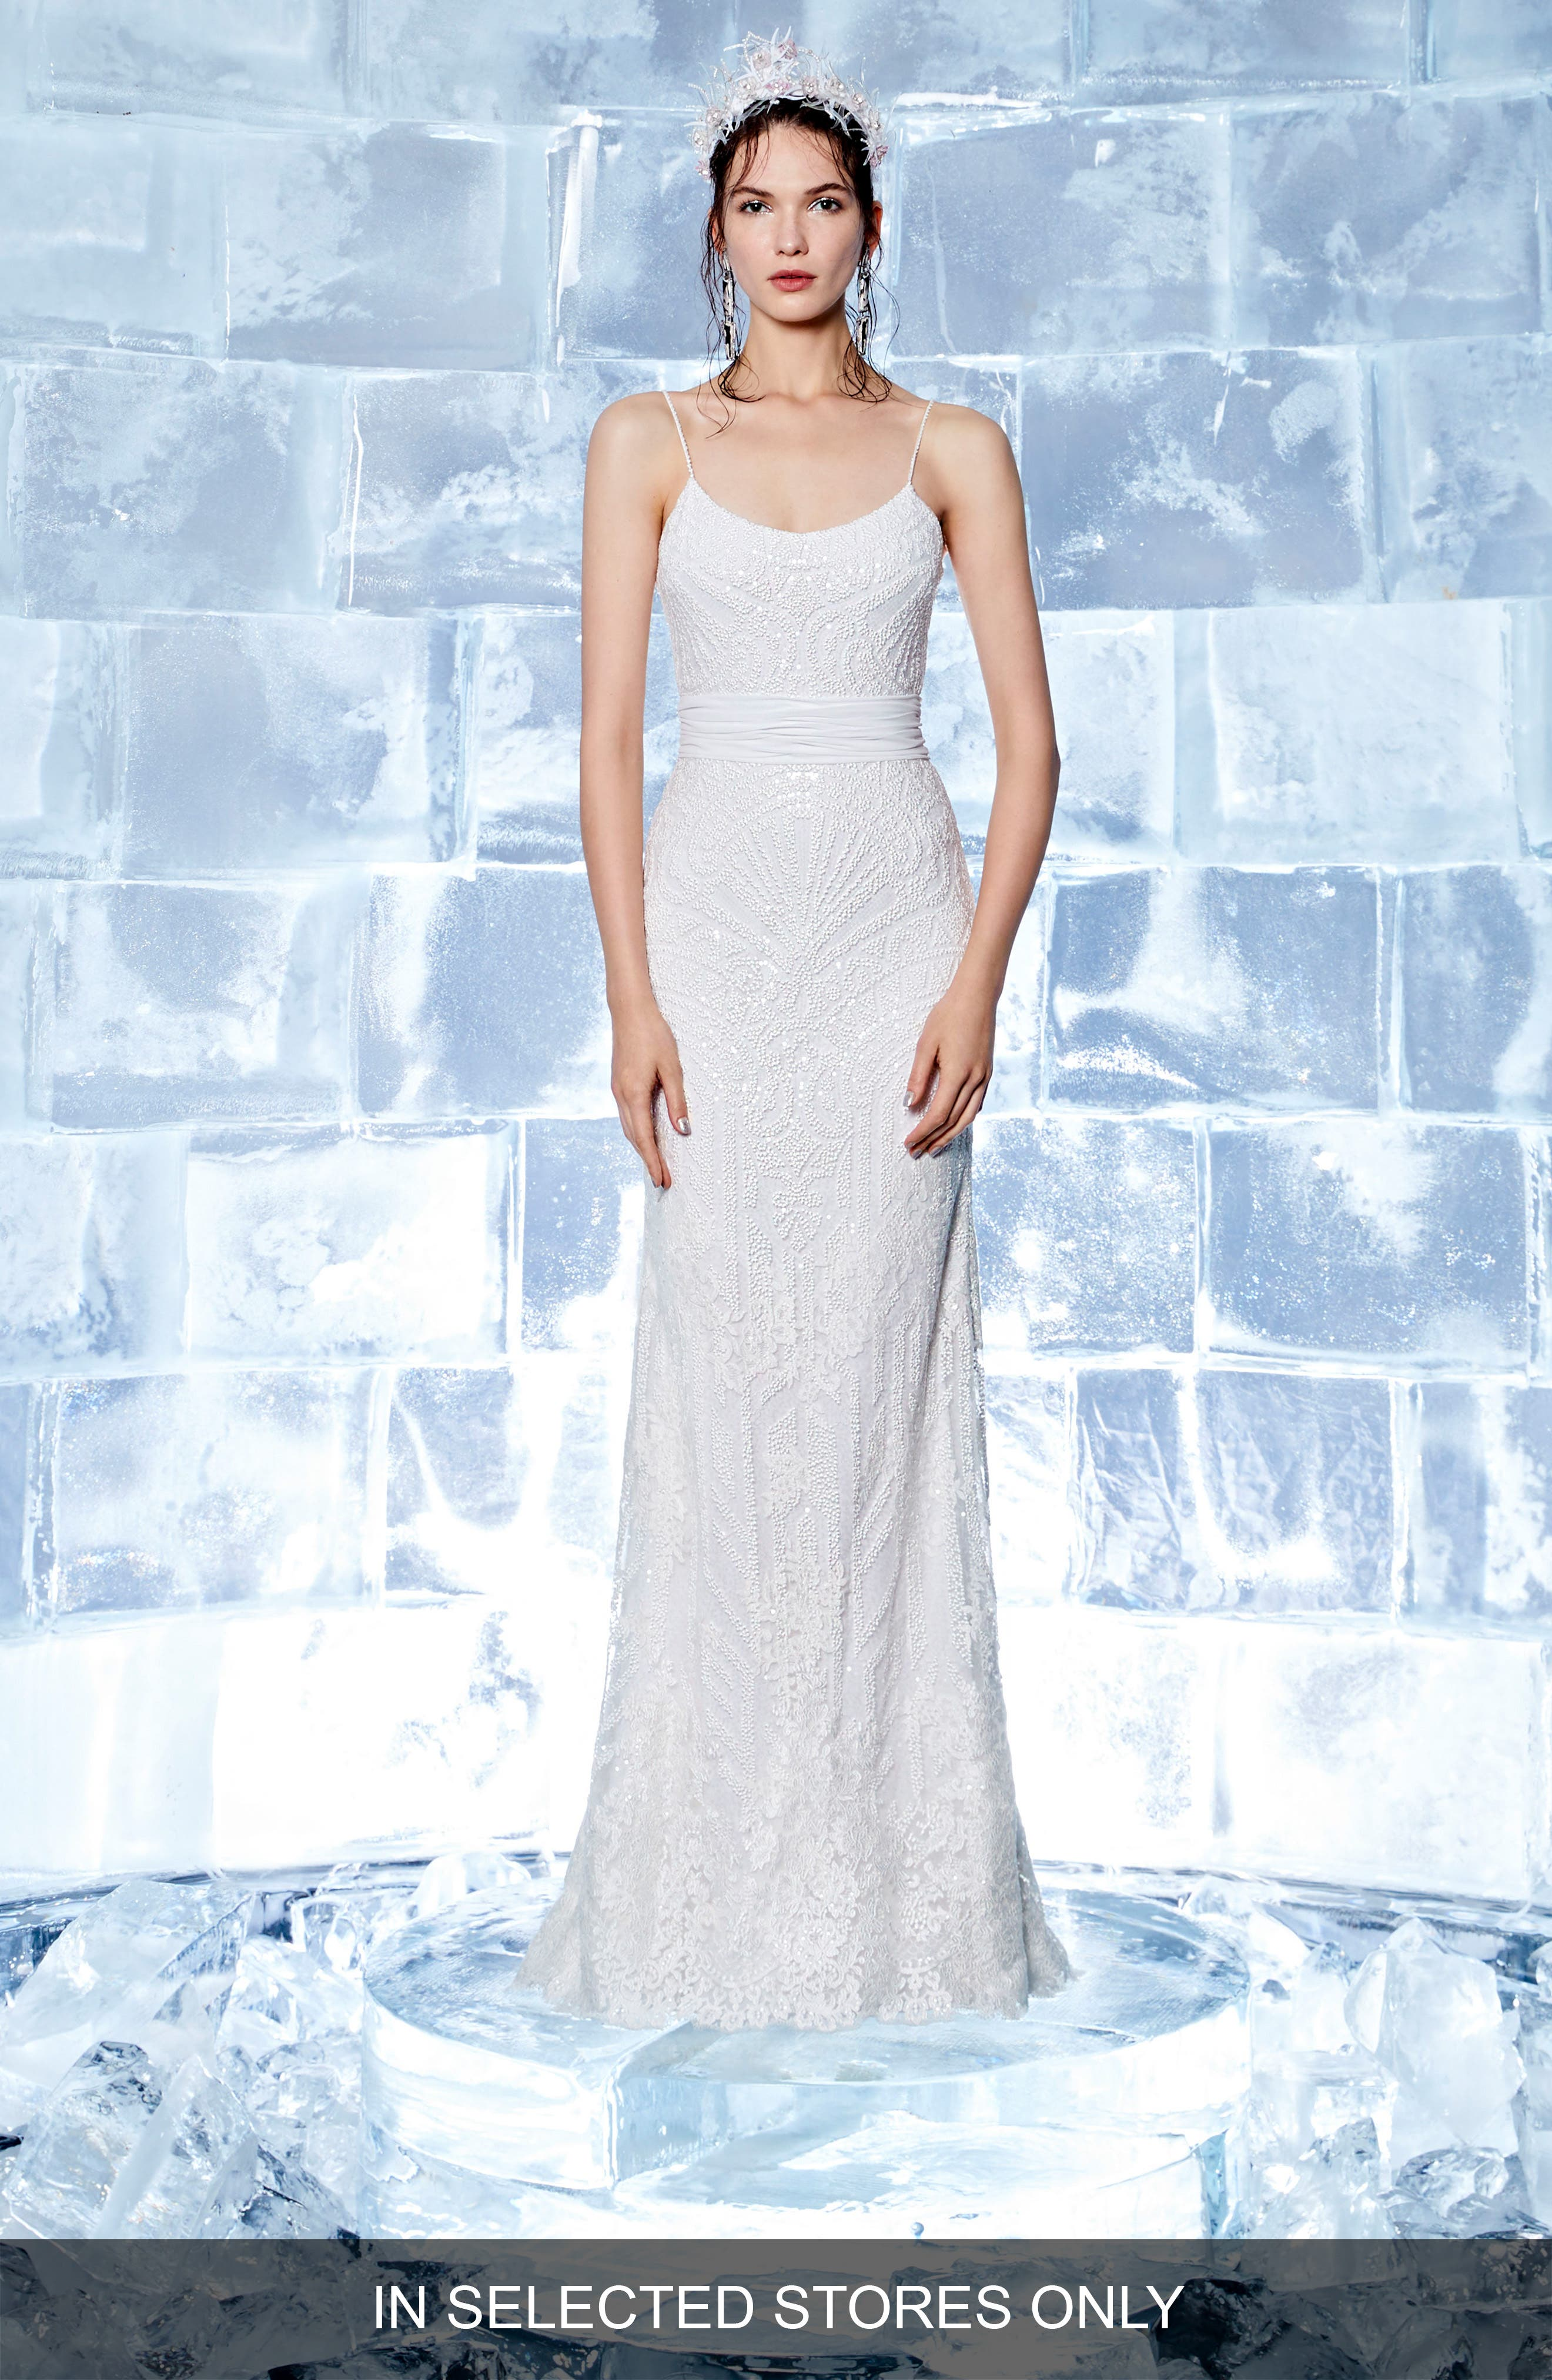 Iclyn Beaded Slipgown,                             Main thumbnail 1, color,                             OFF WHITE